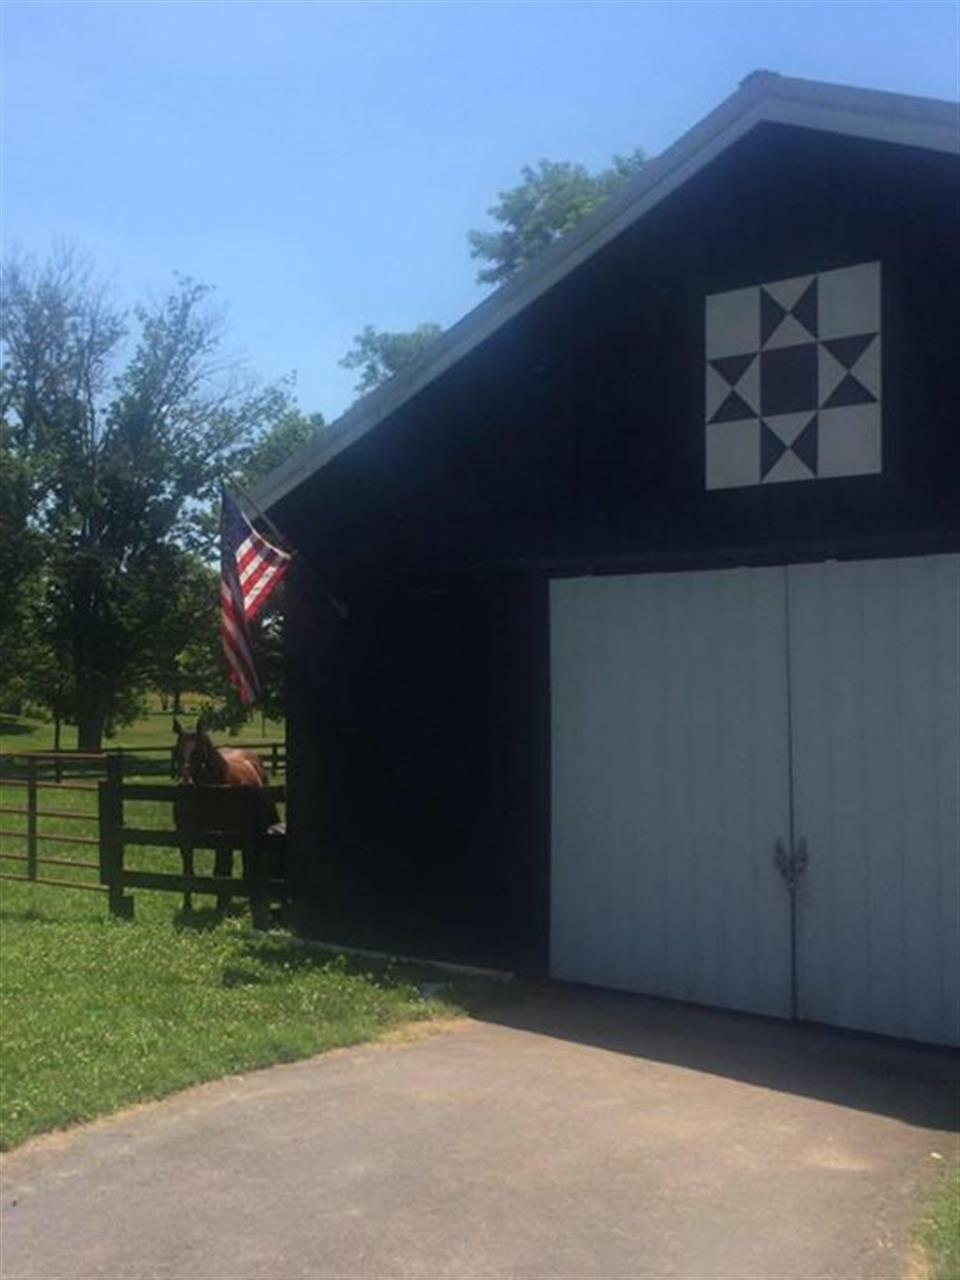 My horse Gallant and the American Flag in beautiful KY.